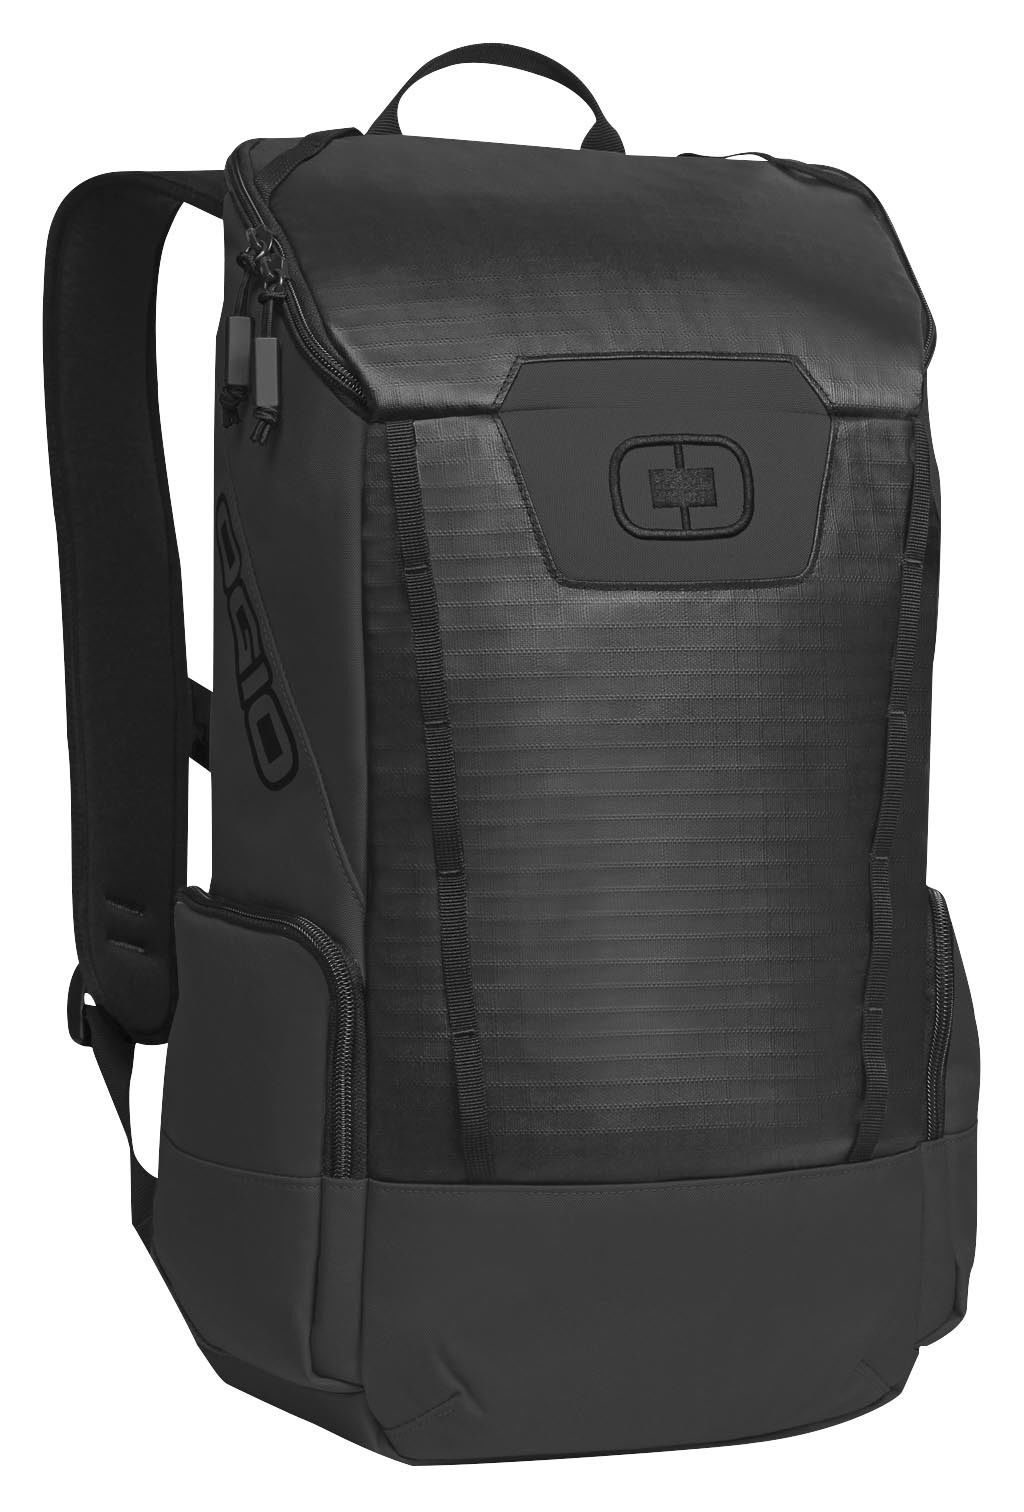 OGIO Clutch Backpack - RevZilla